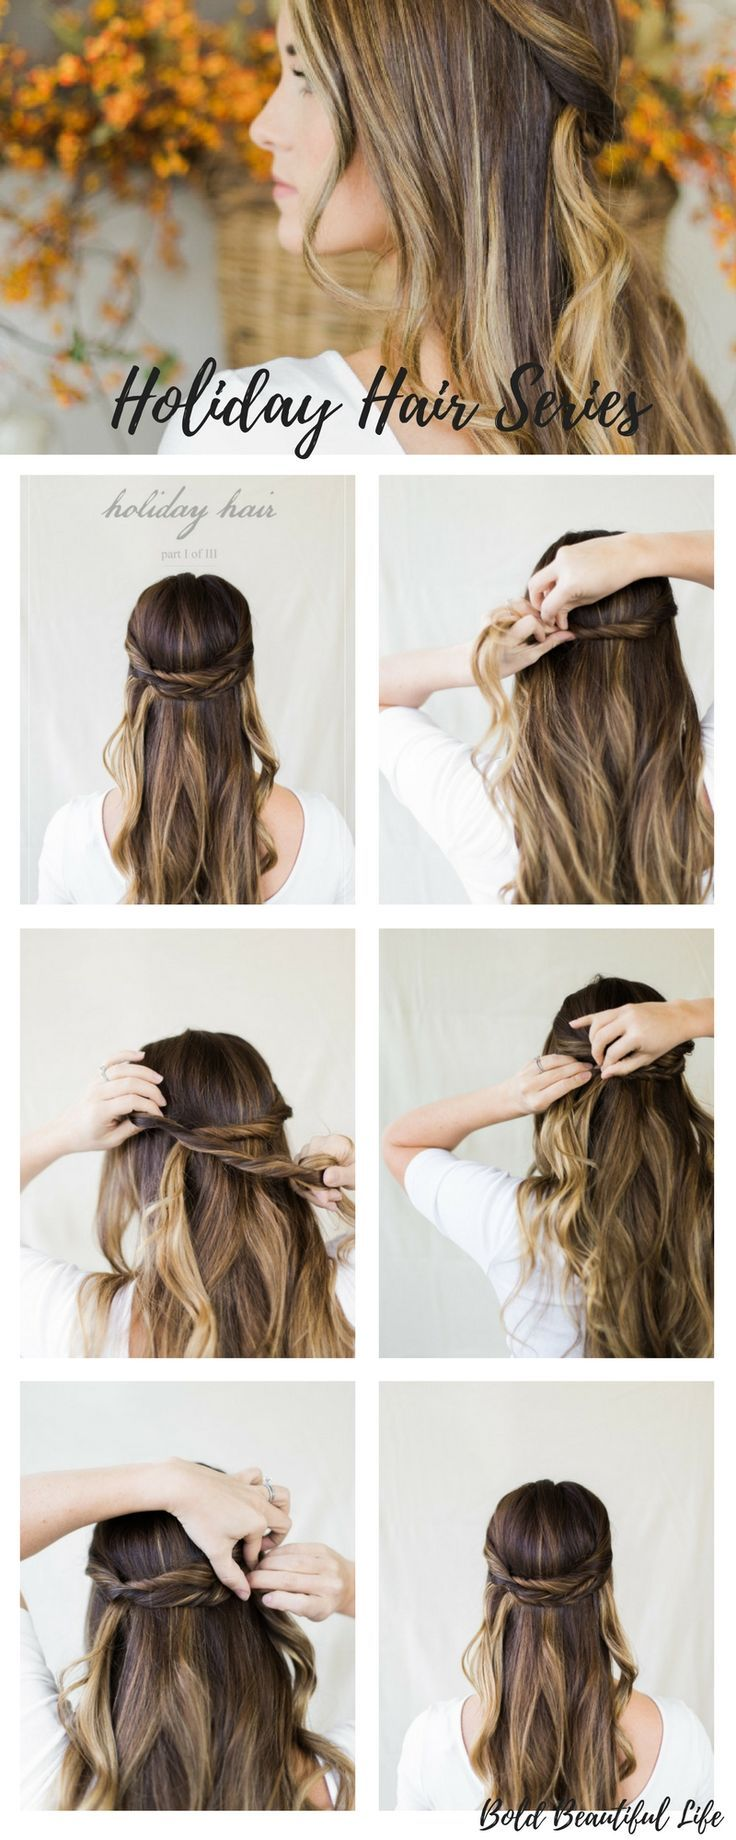 Half Up Hairstyle Tutorial Elegant Hair Style How To With Step By Step Pictures And Instructions Lovely Hair Hair Styles Long Hair Styles Elegant Hairstyles